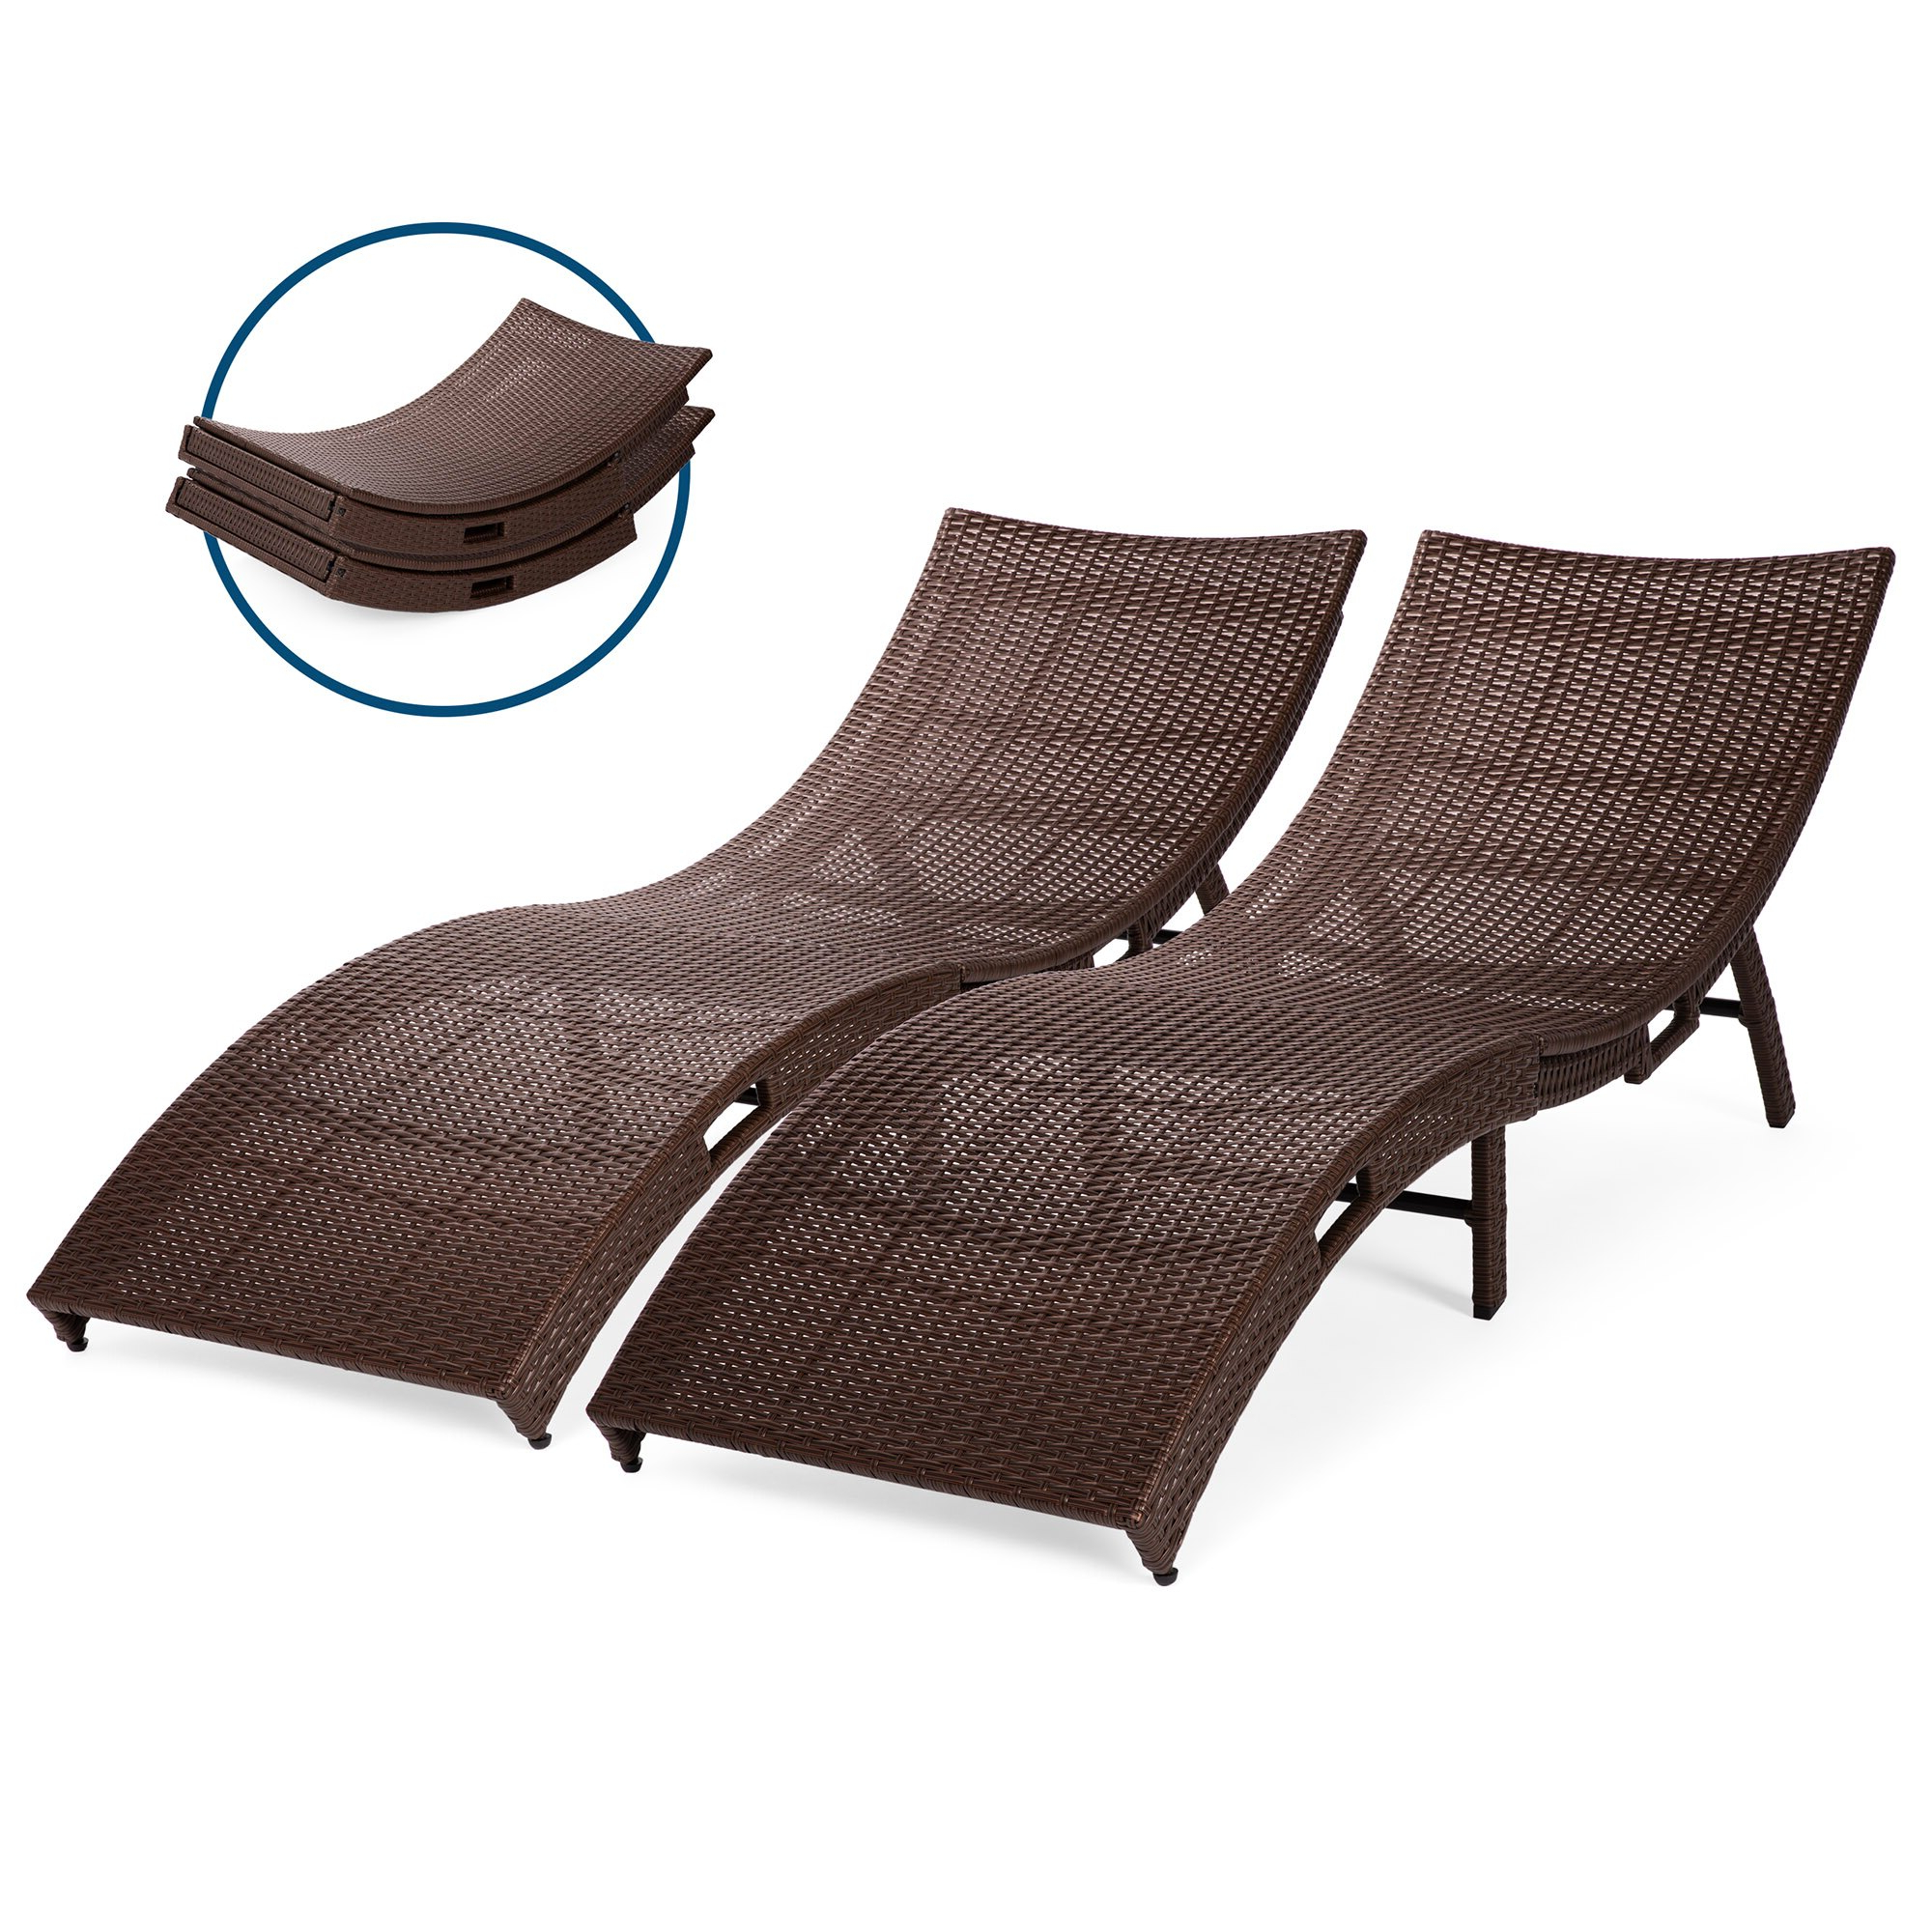 Outdoor Wicker Chaise Lounge Chairs Pertaining To 2020 Best Choice Products Set Of 2 Patio All Weather Folding Wicker Chaise Lounge Chairs W/ Handles, No Assembly Required (View 7 of 25)